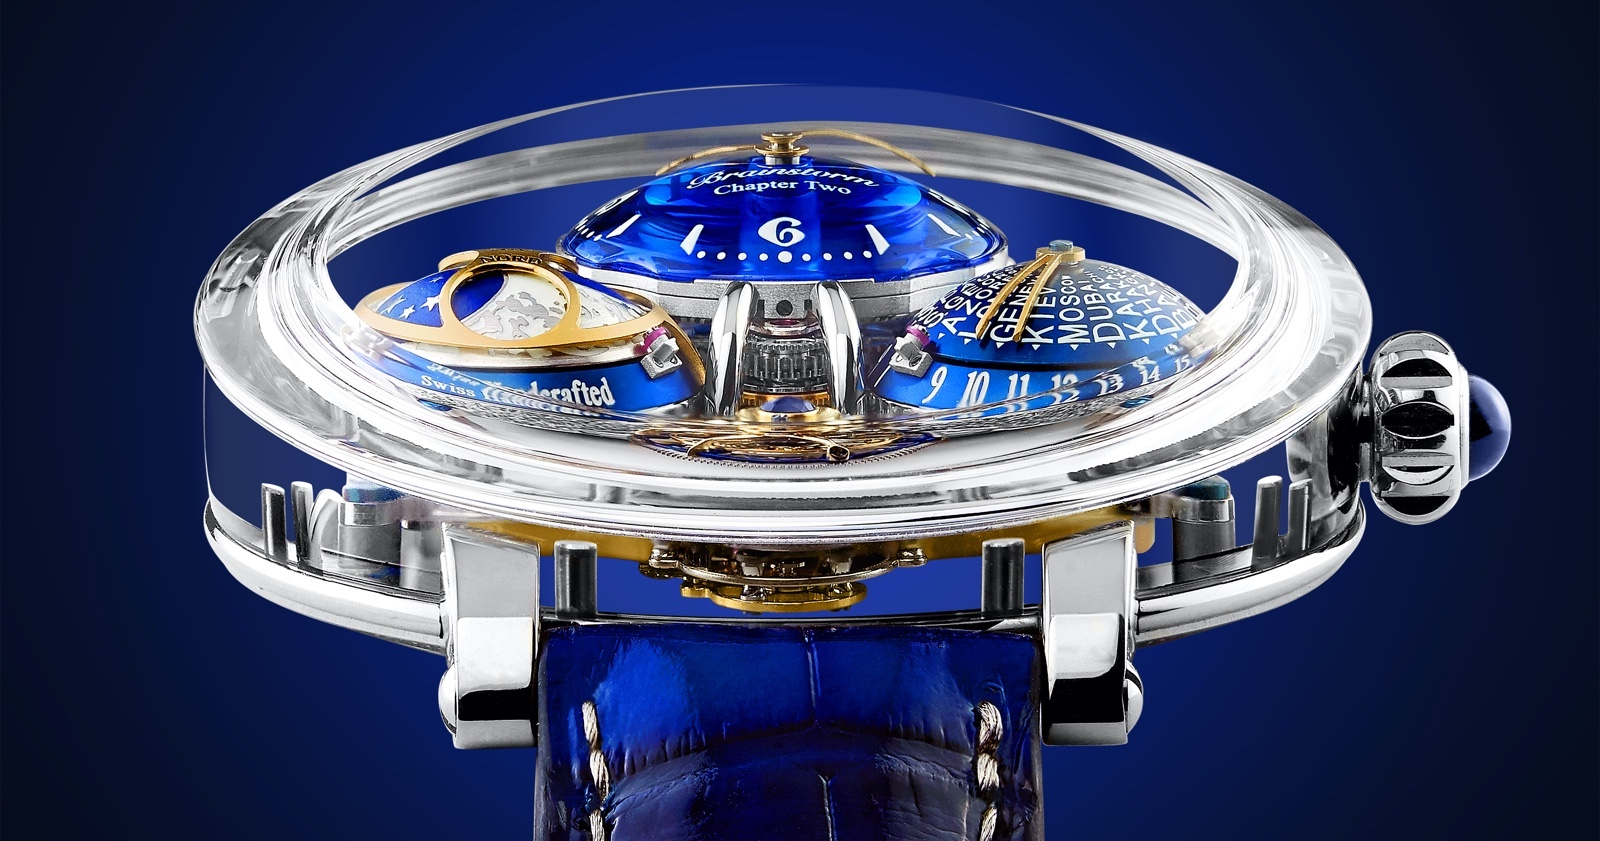 Bovet 1822 Récital 26 Brainstorm Chapter Two Front